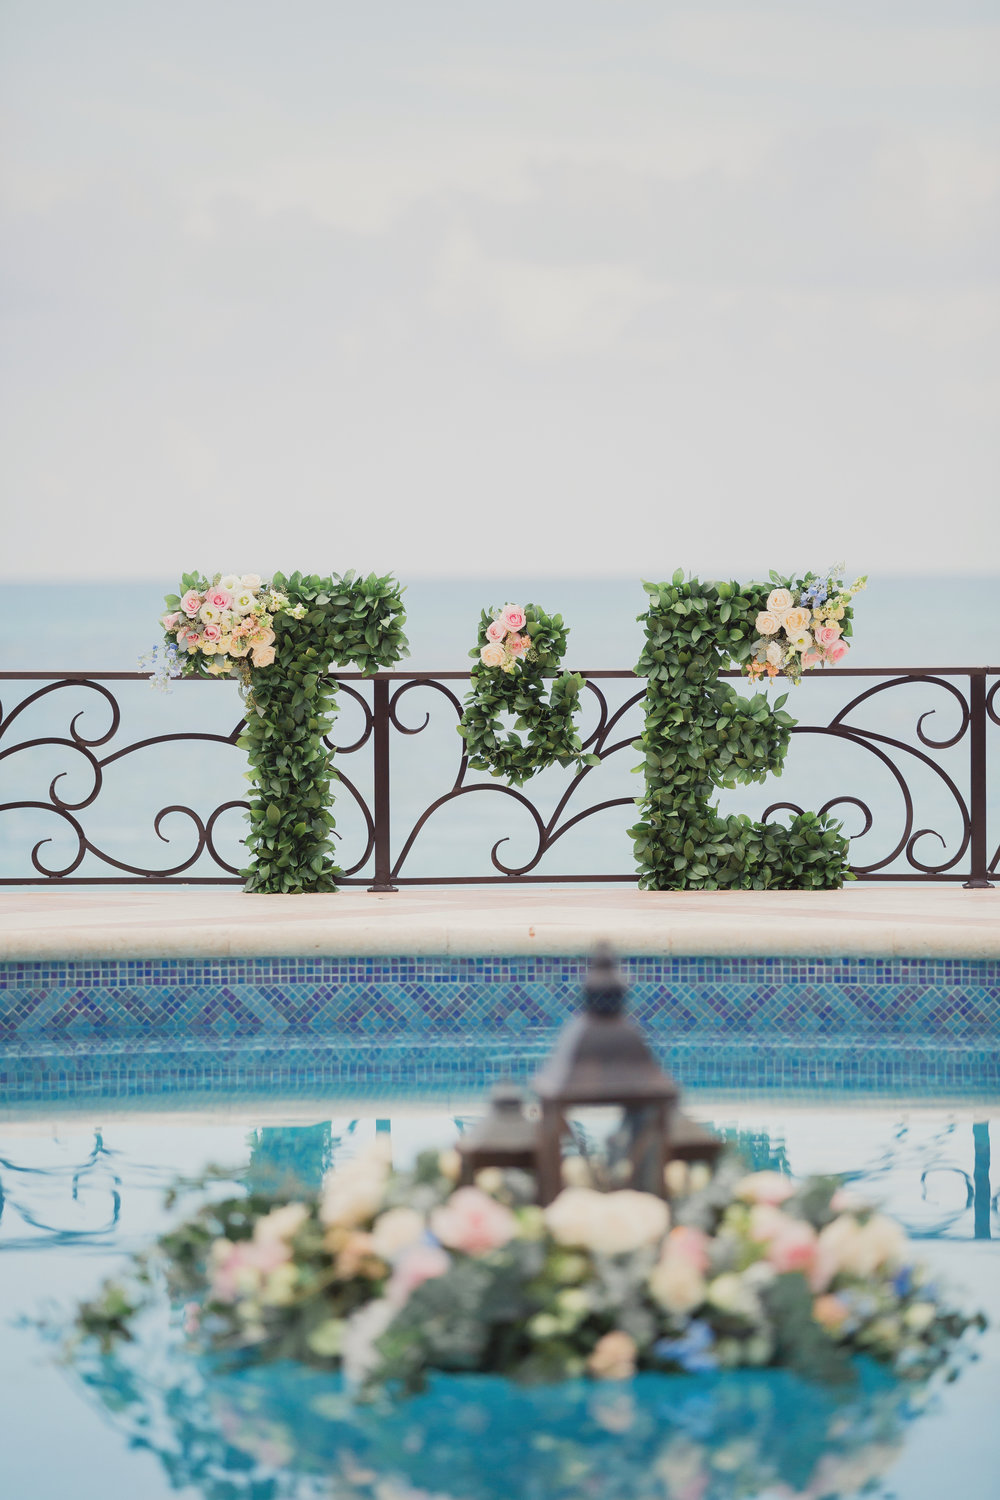 cancun-wedding-venue-villa-la-joya-18.jpg